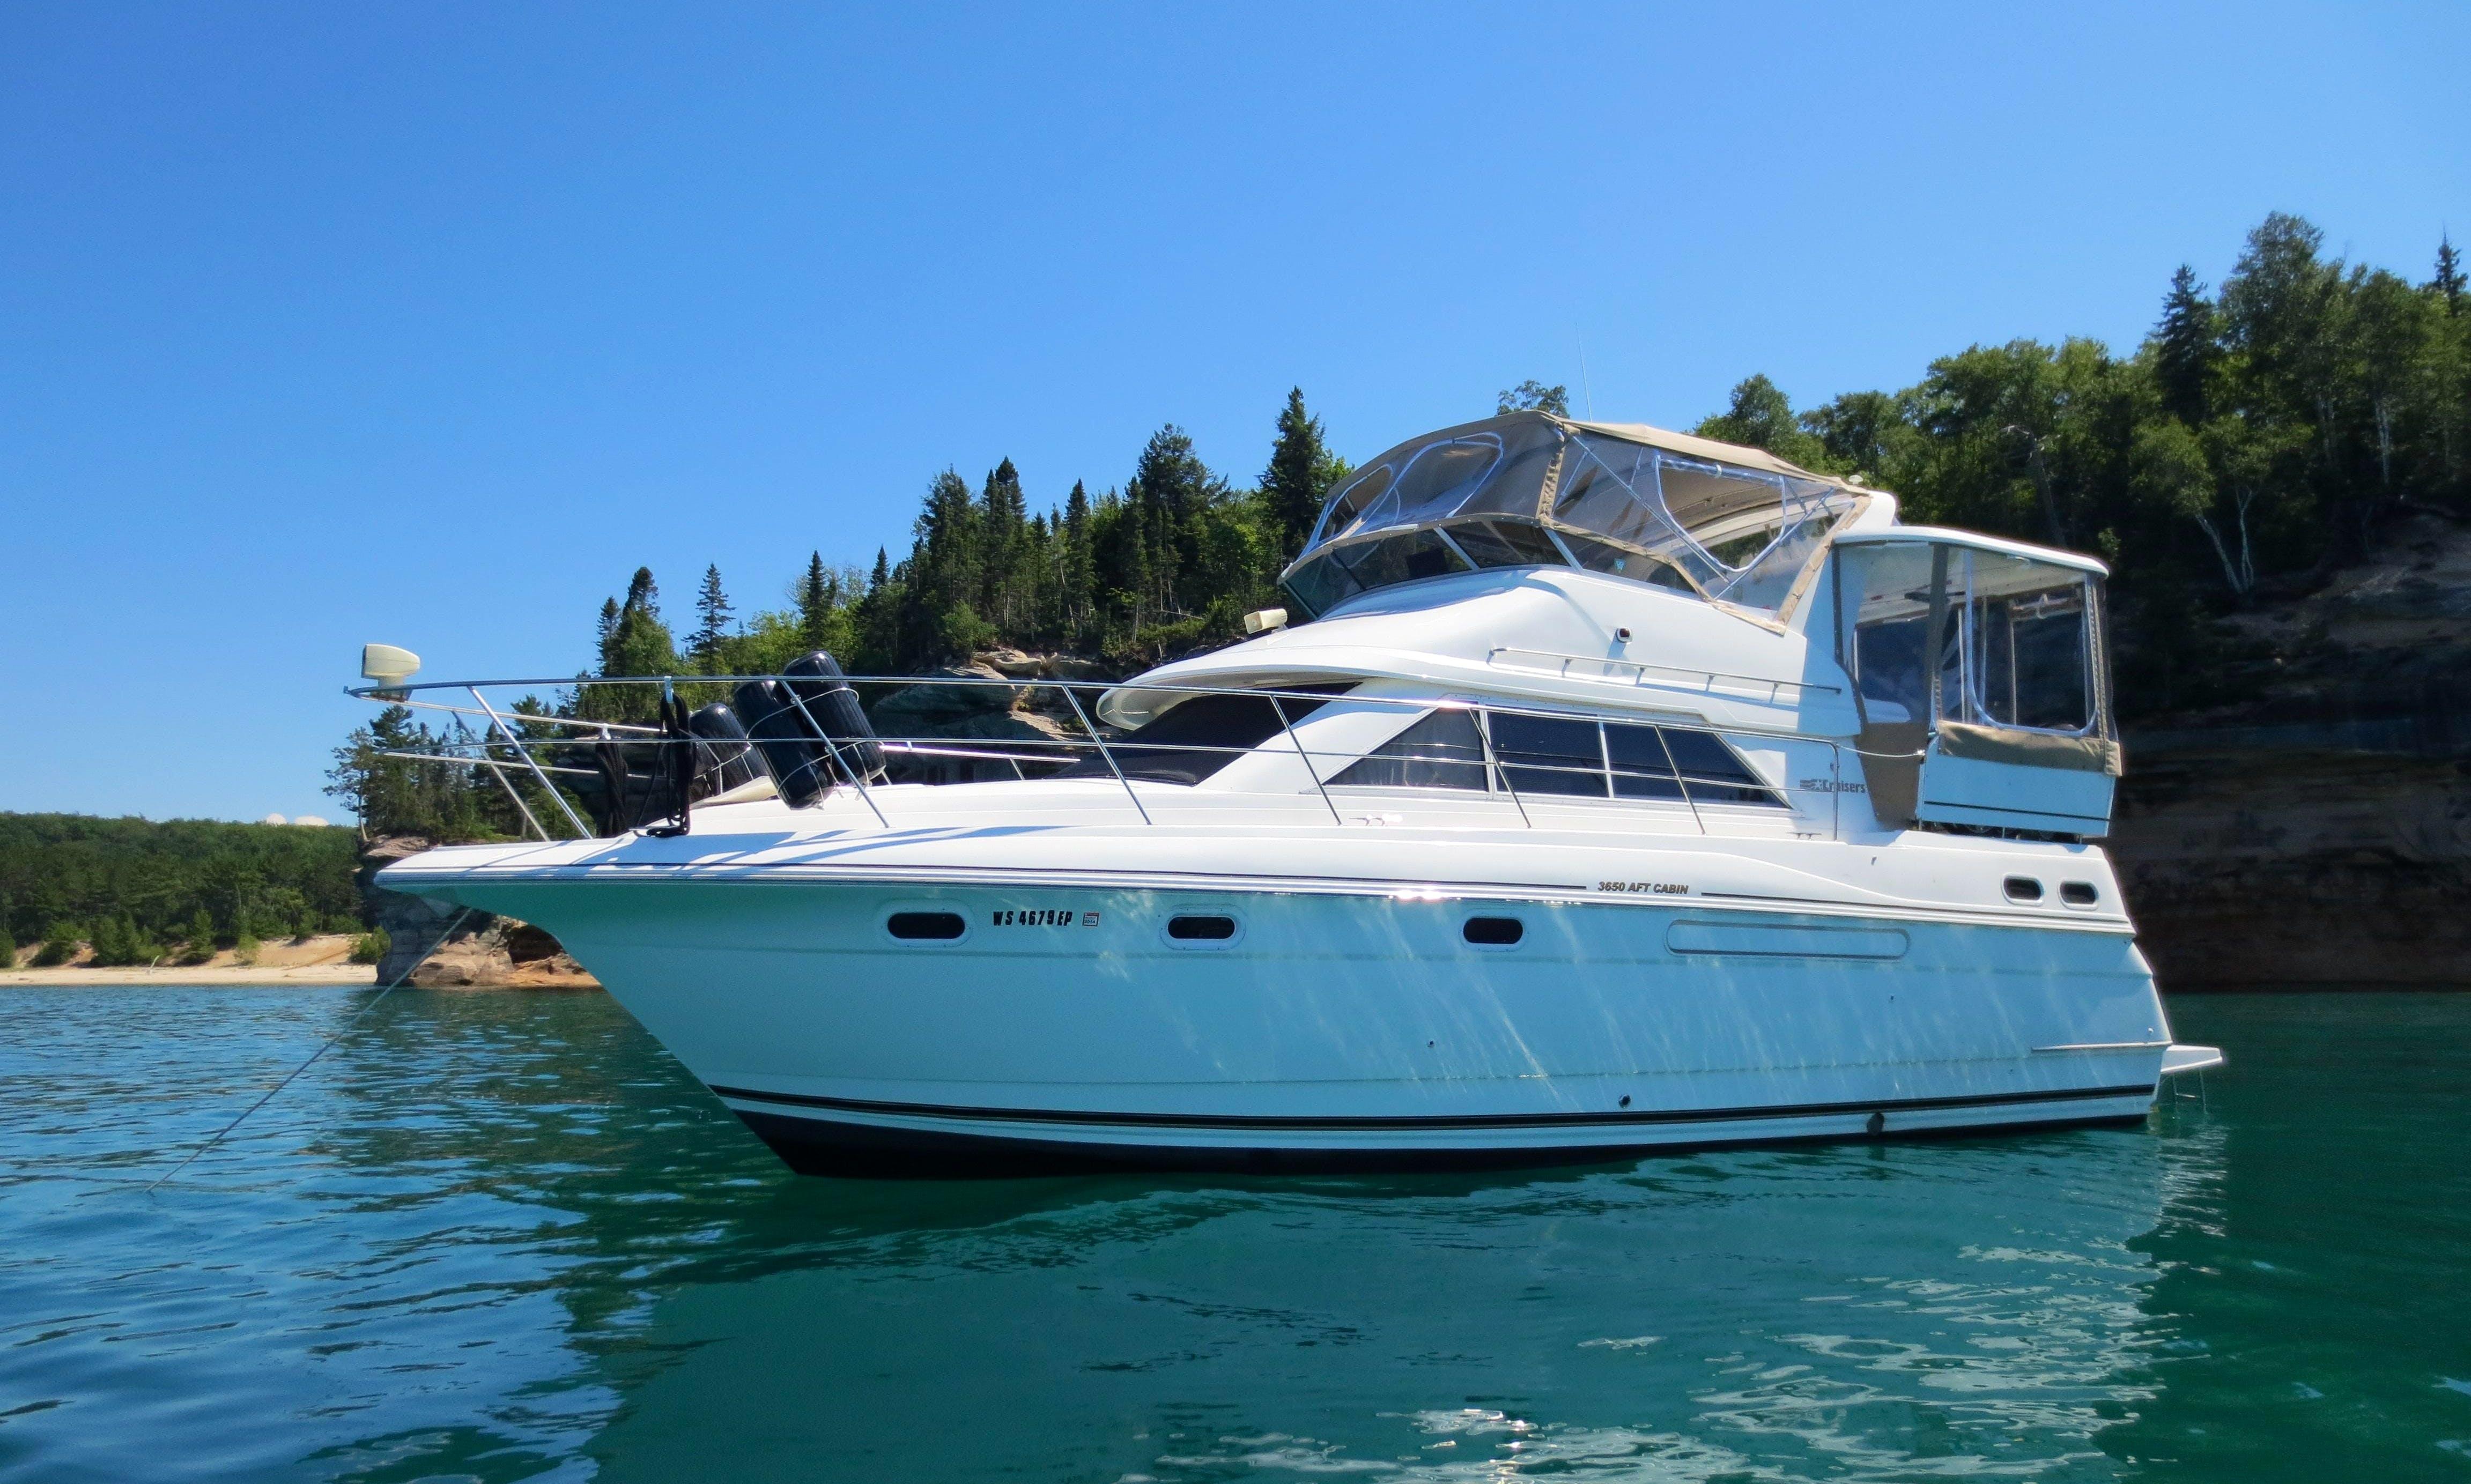 Top 10 Texas Boat Rentals Yacht Charters Getmyboat